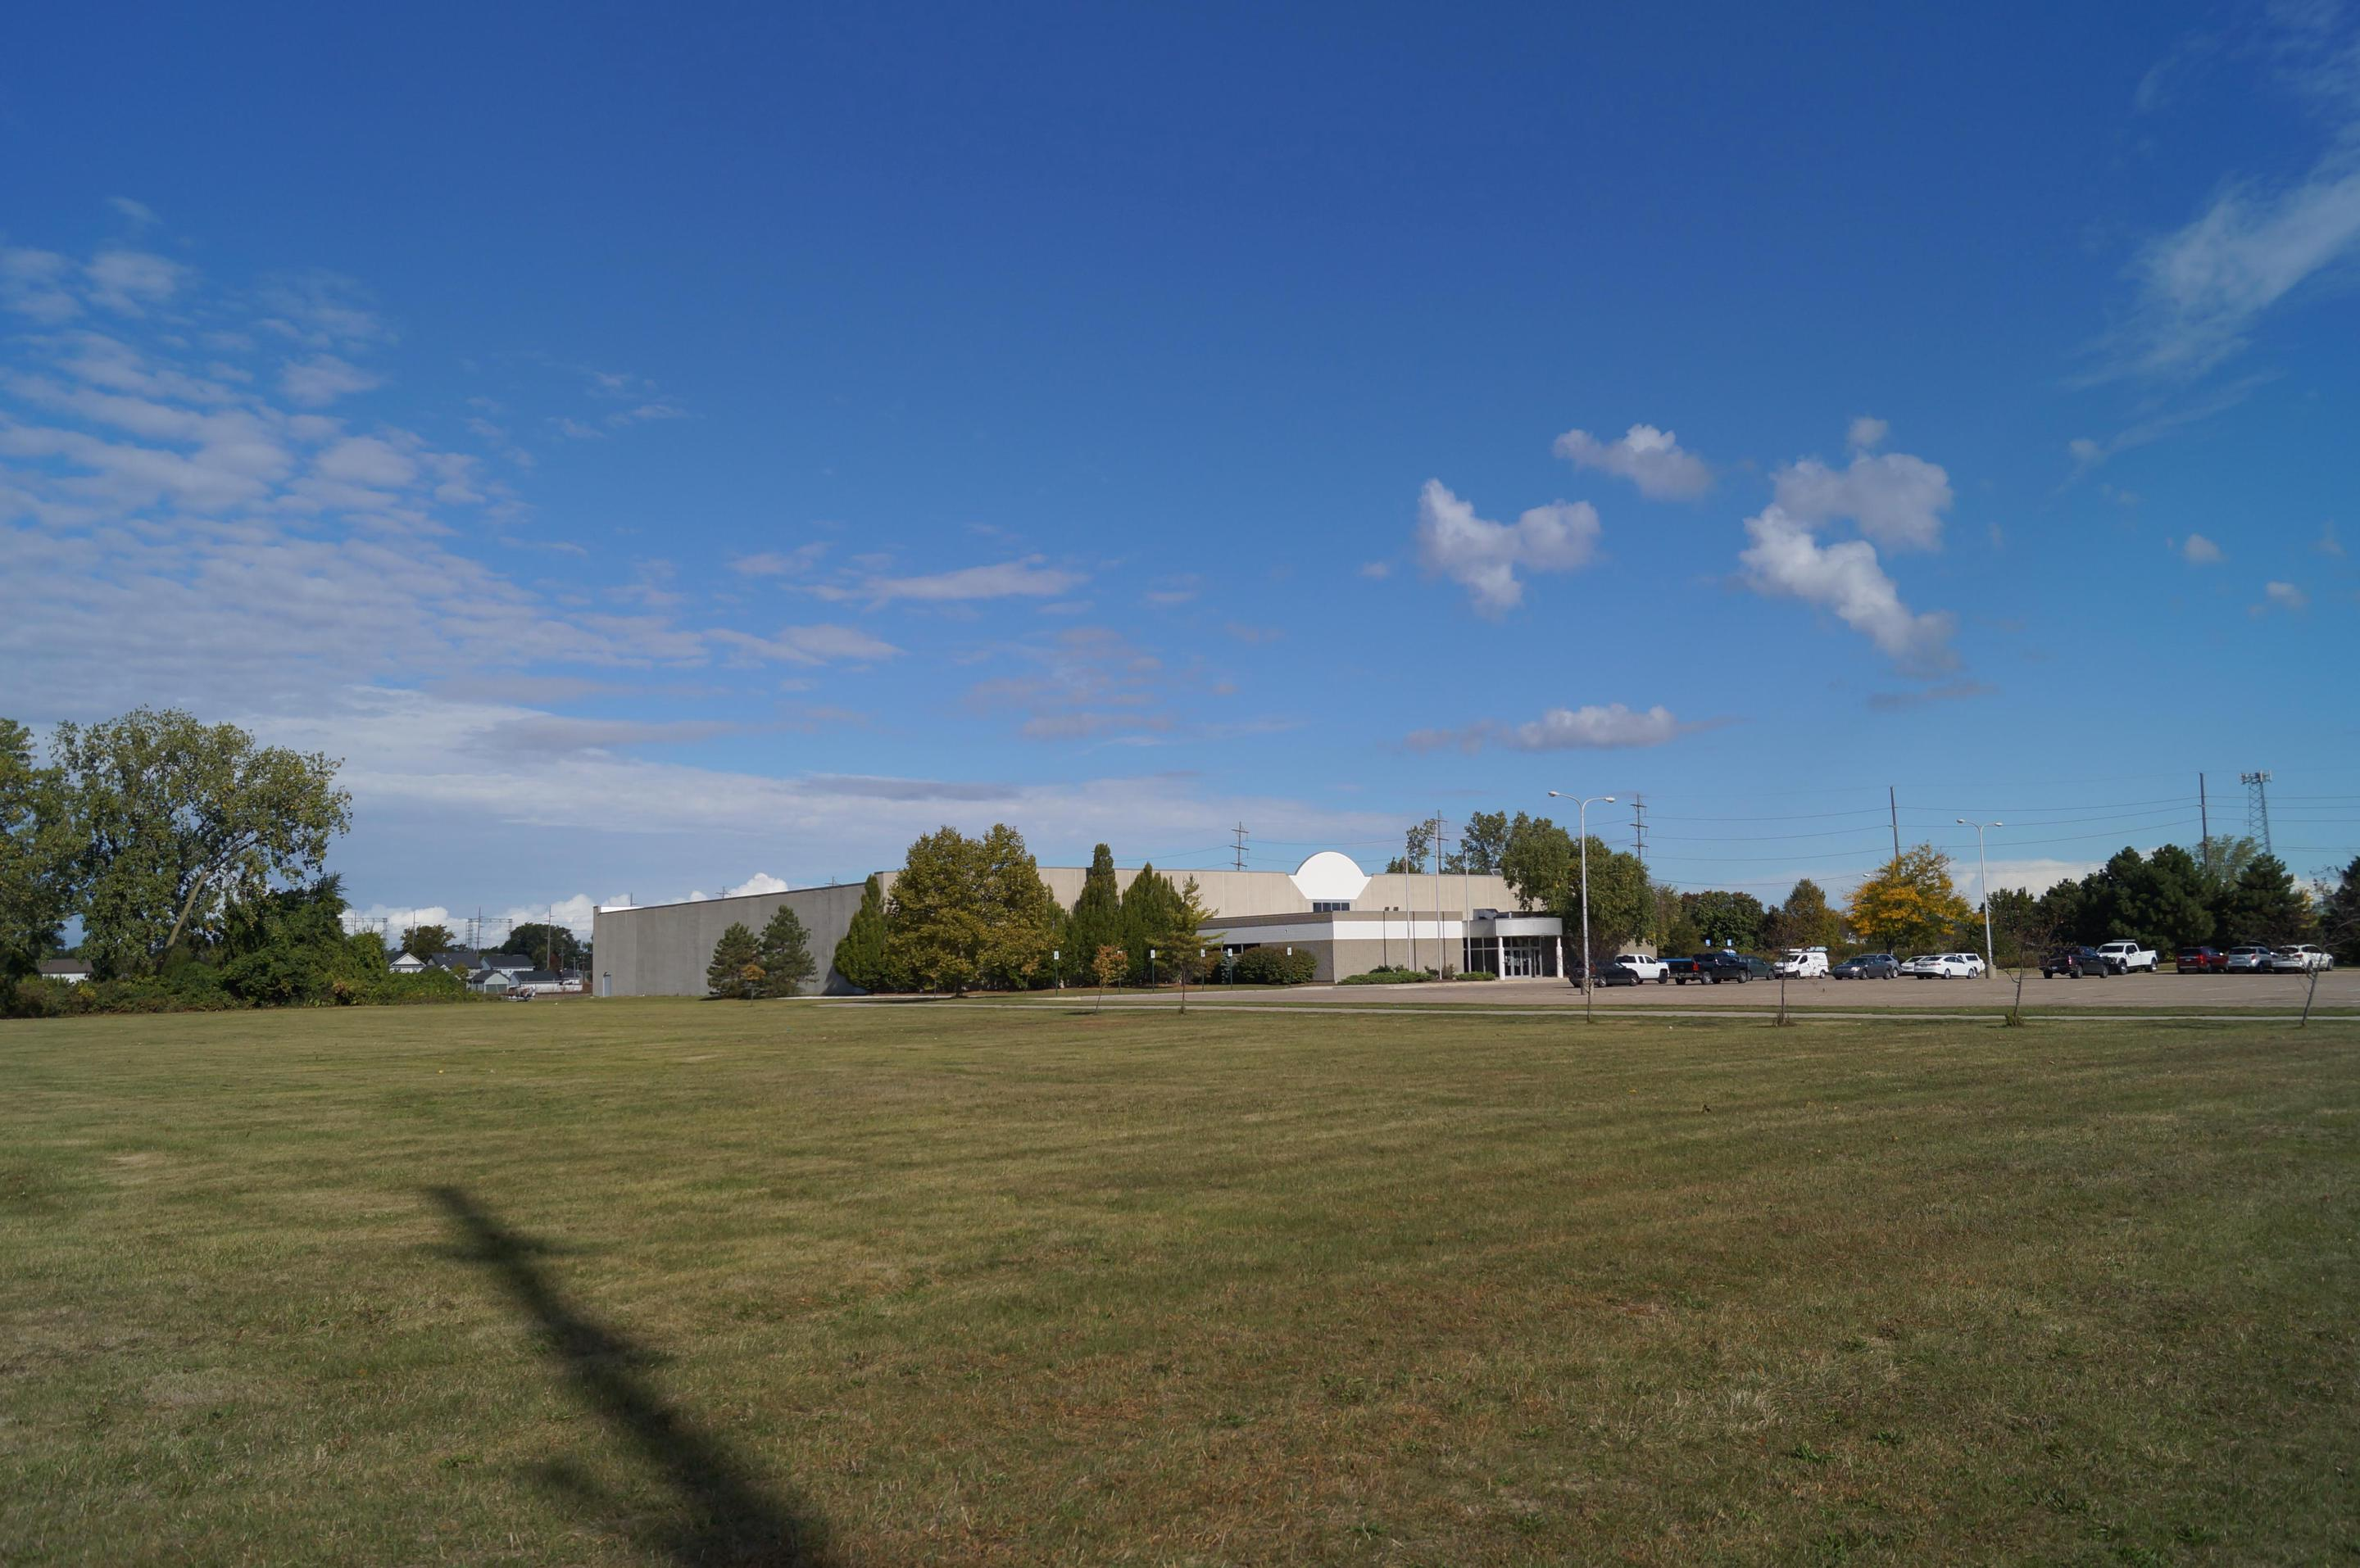 River Raisin National Battlefield Park Education CenterA View of the Lawn and new Education Center